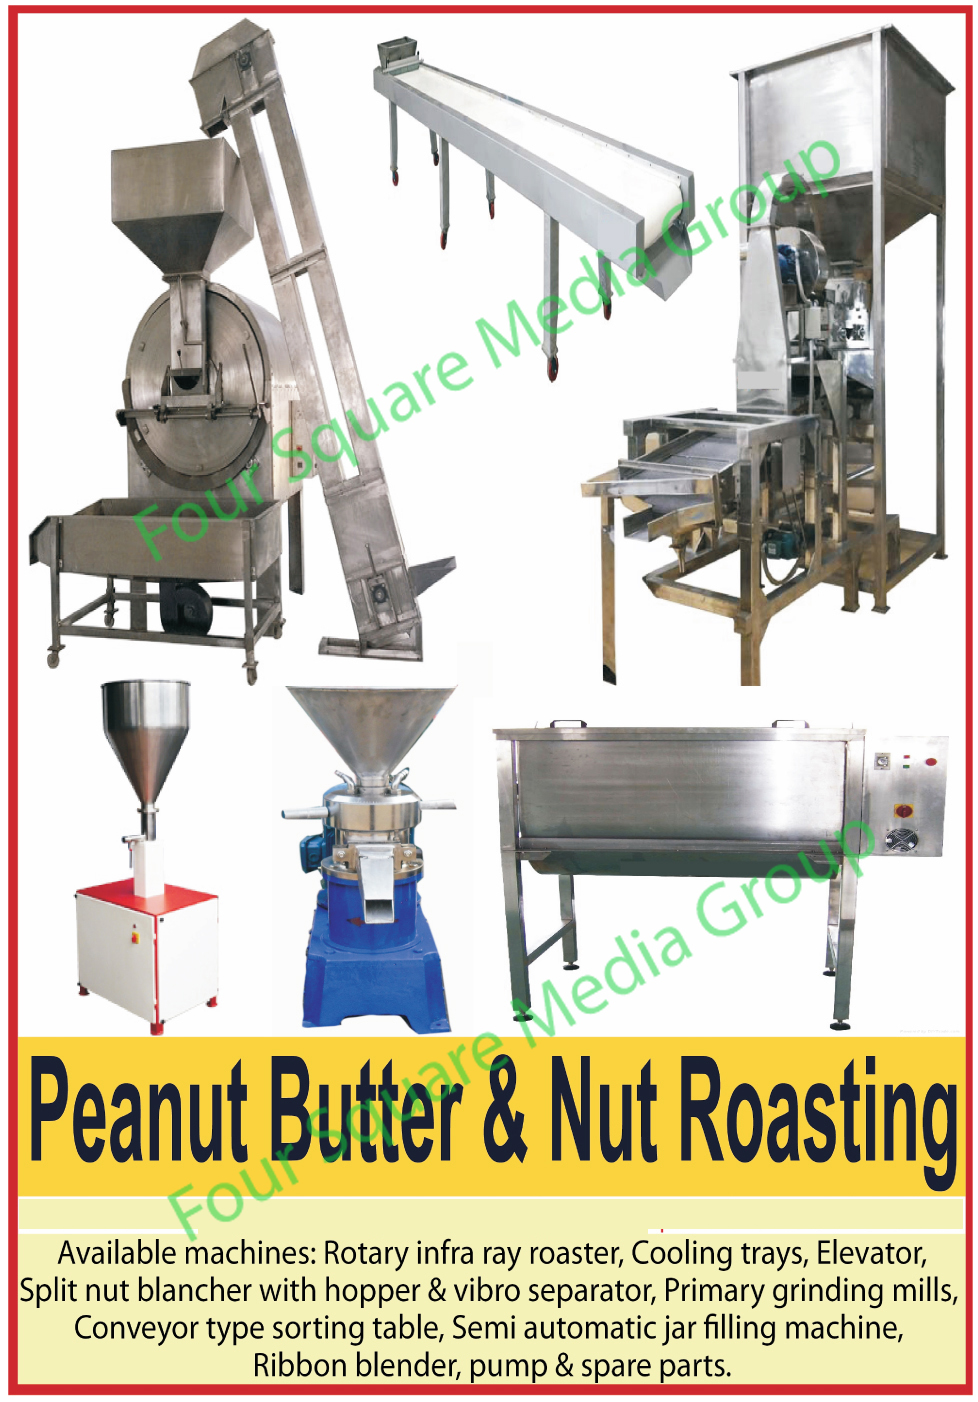 Zero Calorie Sugar Substitute, Zero Calories Sucralose,Sucralose, Sugar Lite, Used Peanut Butter Machines, Used Nut Roasting Machines, Used Rotary Infra Ray Roasters, Used Cooling Trays, Used Split Nut Blancher with Hopper, Used Split Nut Blancher with Vibro Separator, Used Split Nut Blanchers, Used Primary Grinding Mills, Used Conveyor Type Sorting Tables, Used Semi Automatic Jar Filling Machines, Used Ribbon Blenders